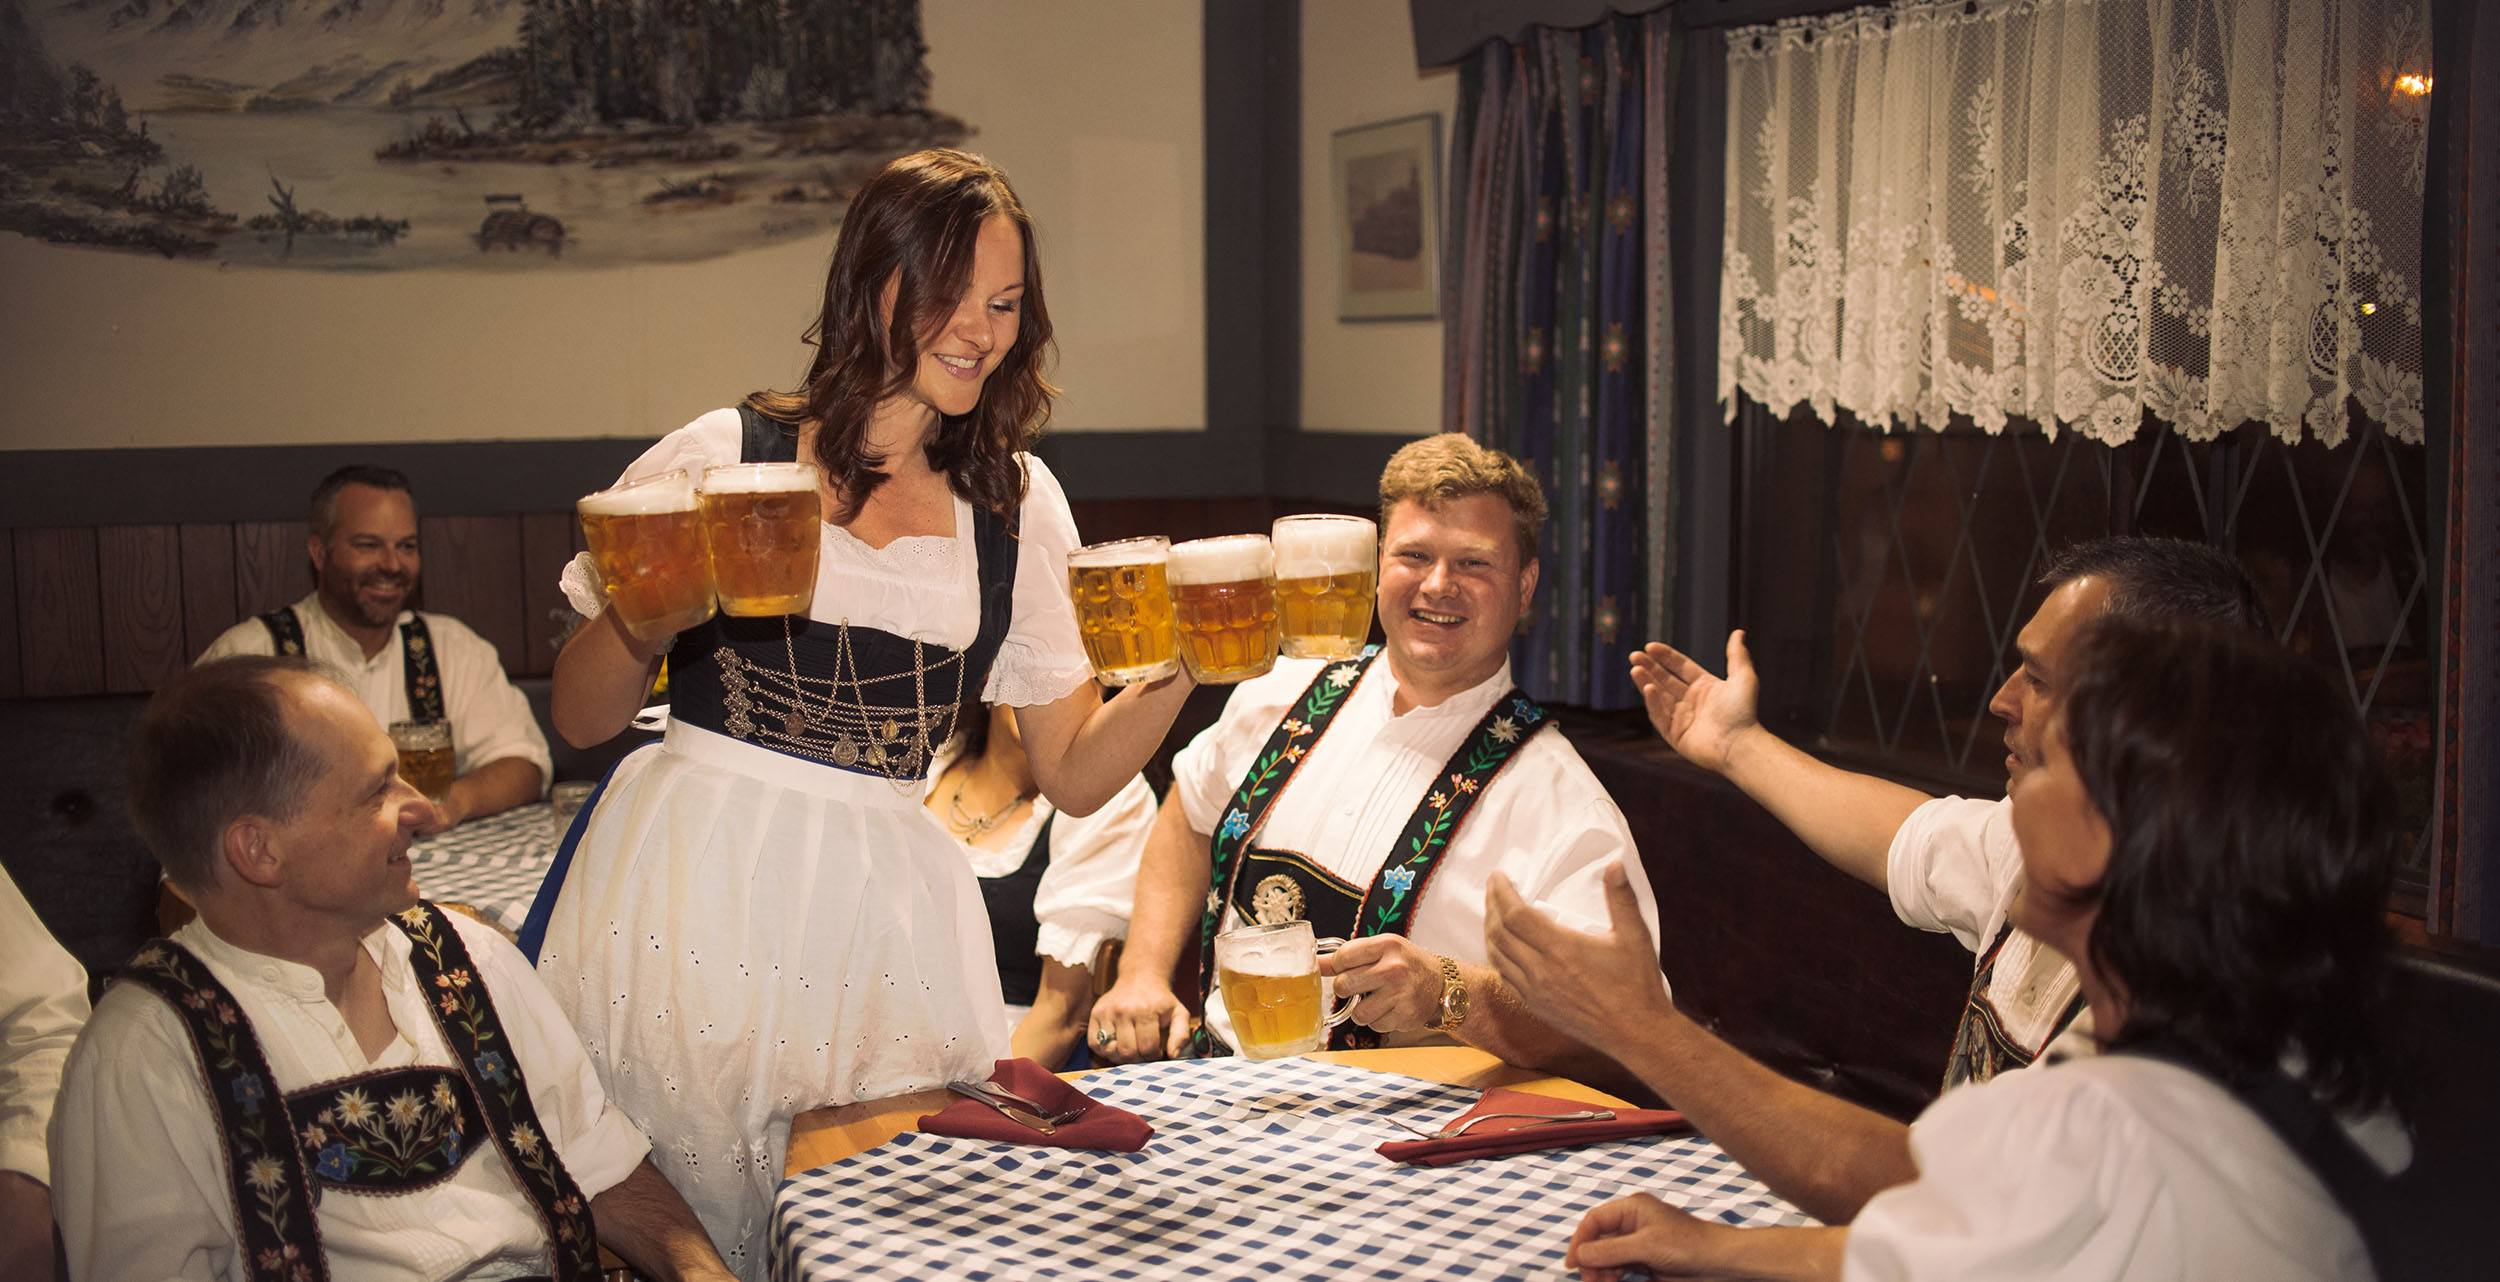 Oktoberfest 2017 at Vancouver Alpen Club begins on October 6